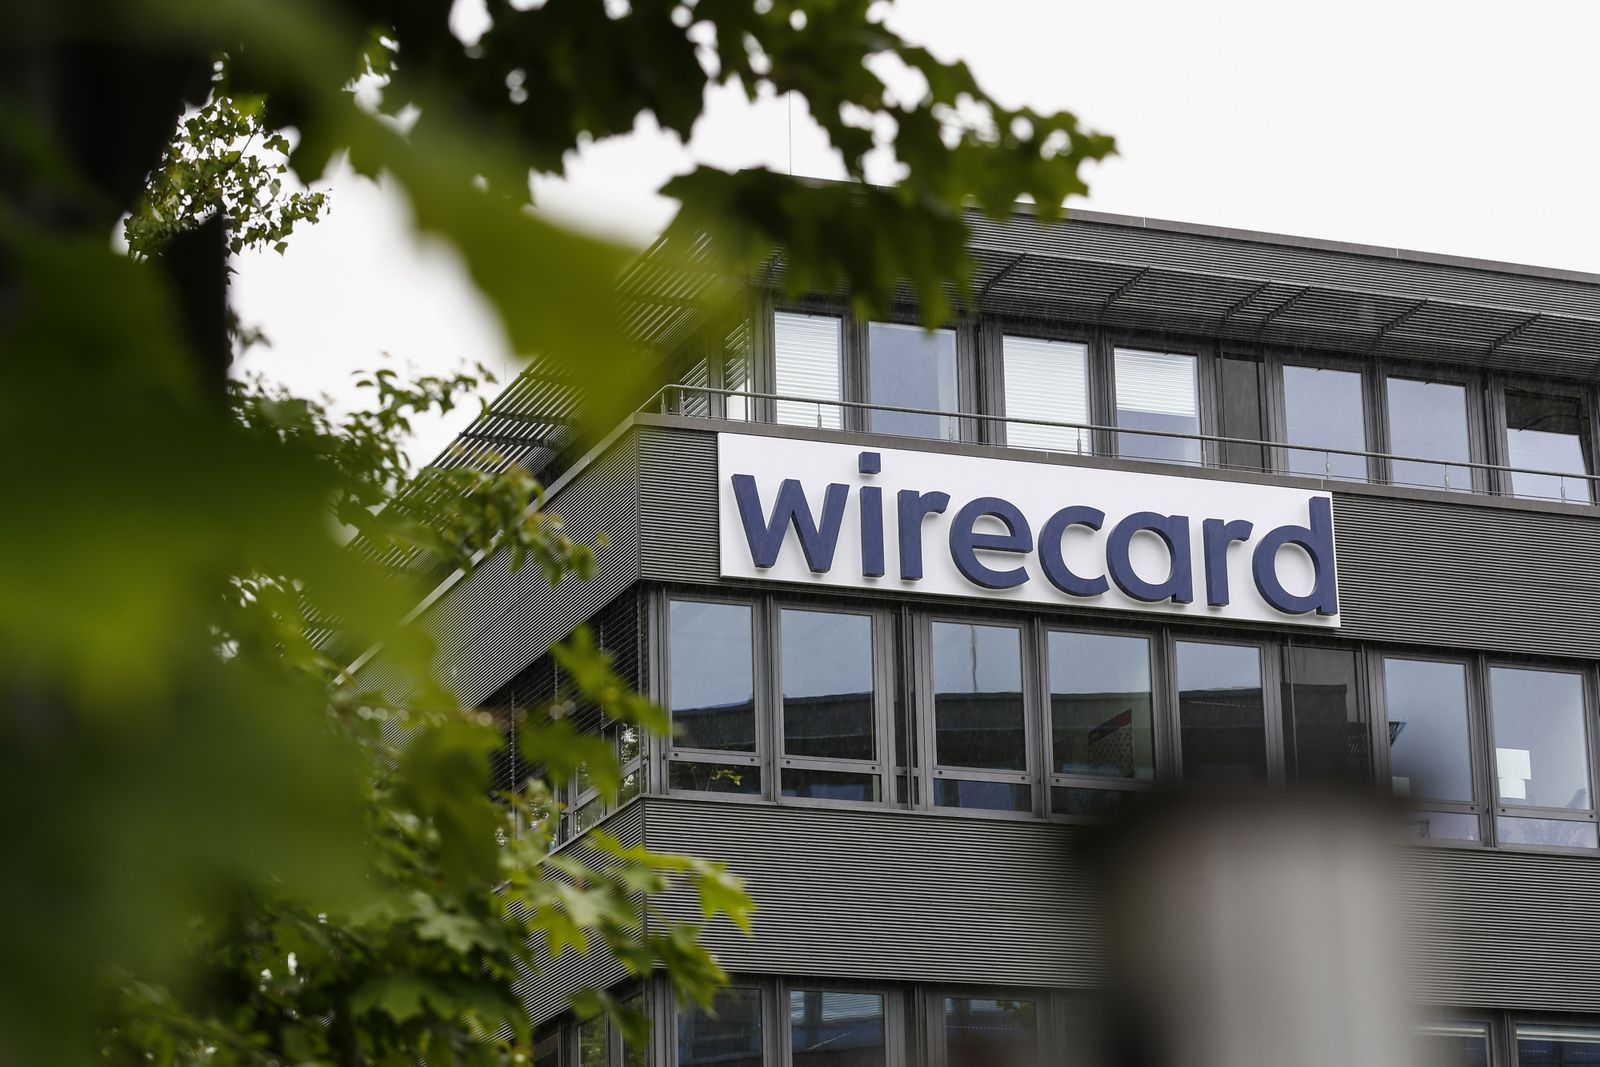 Wirecard's $2.1 Billion Hole Deepens After Forgery Claim